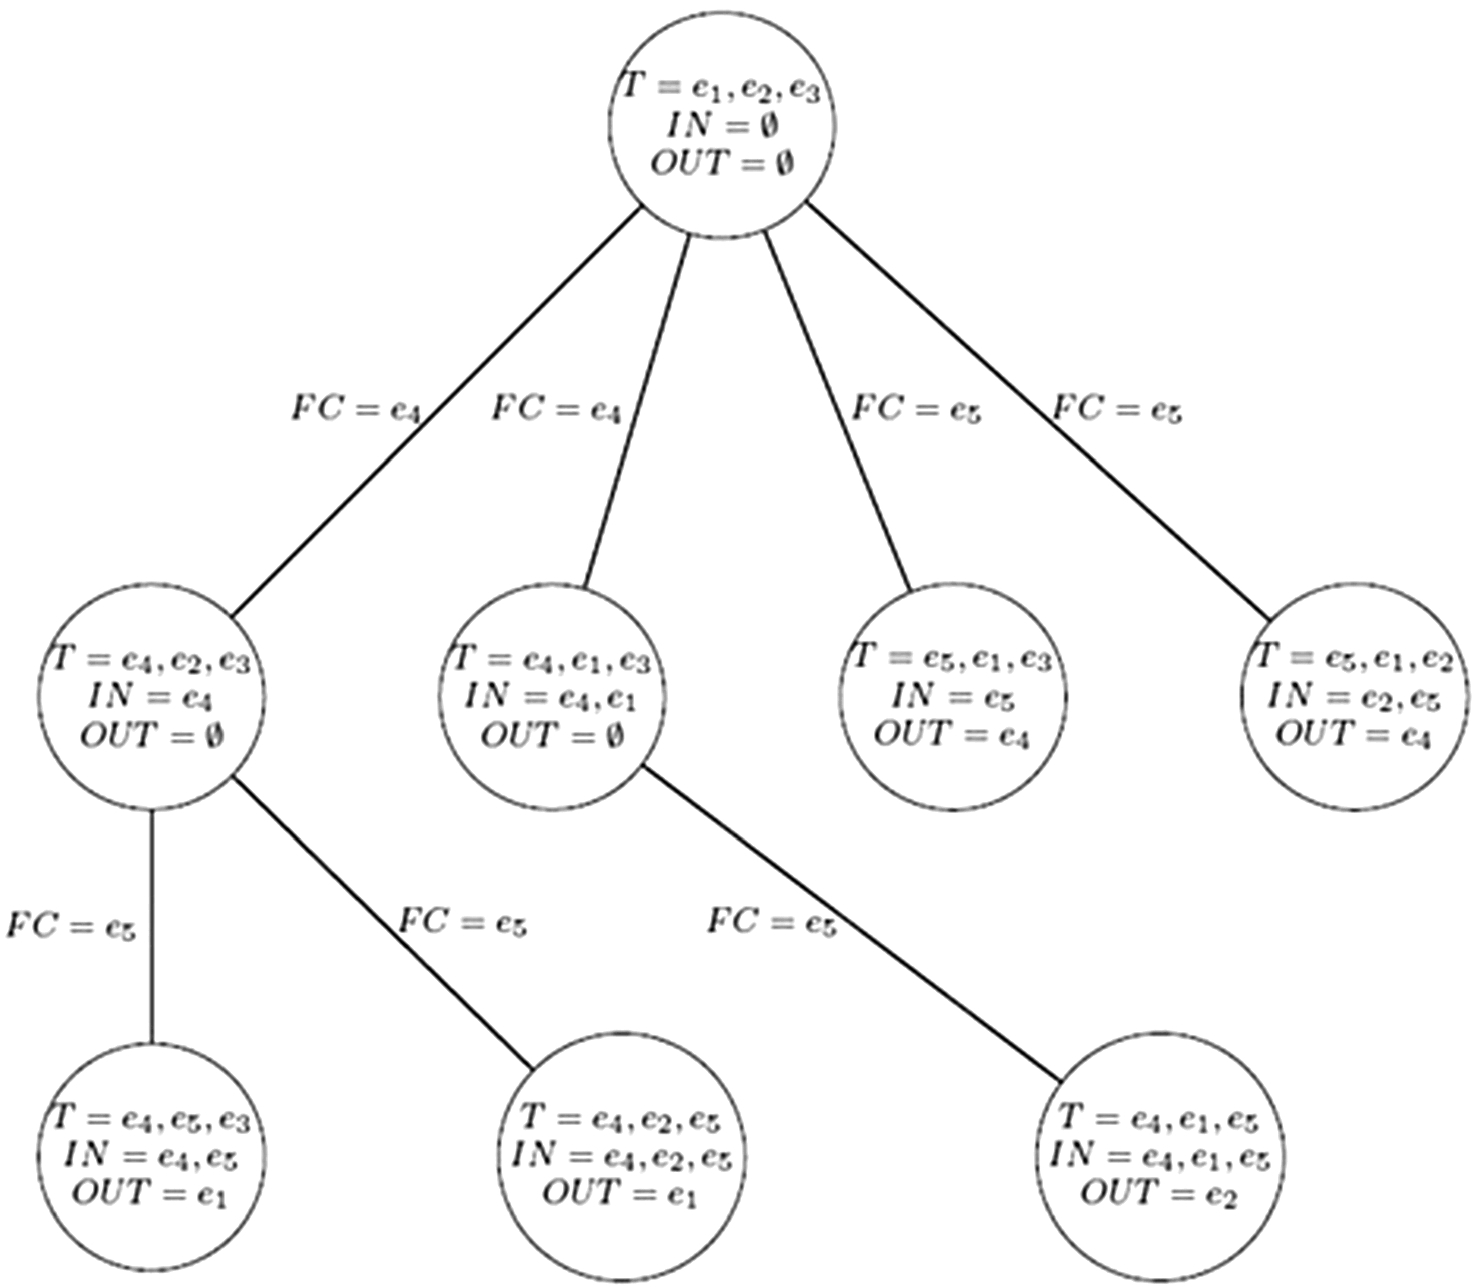 Algorithms for generating all possible spanning trees of a